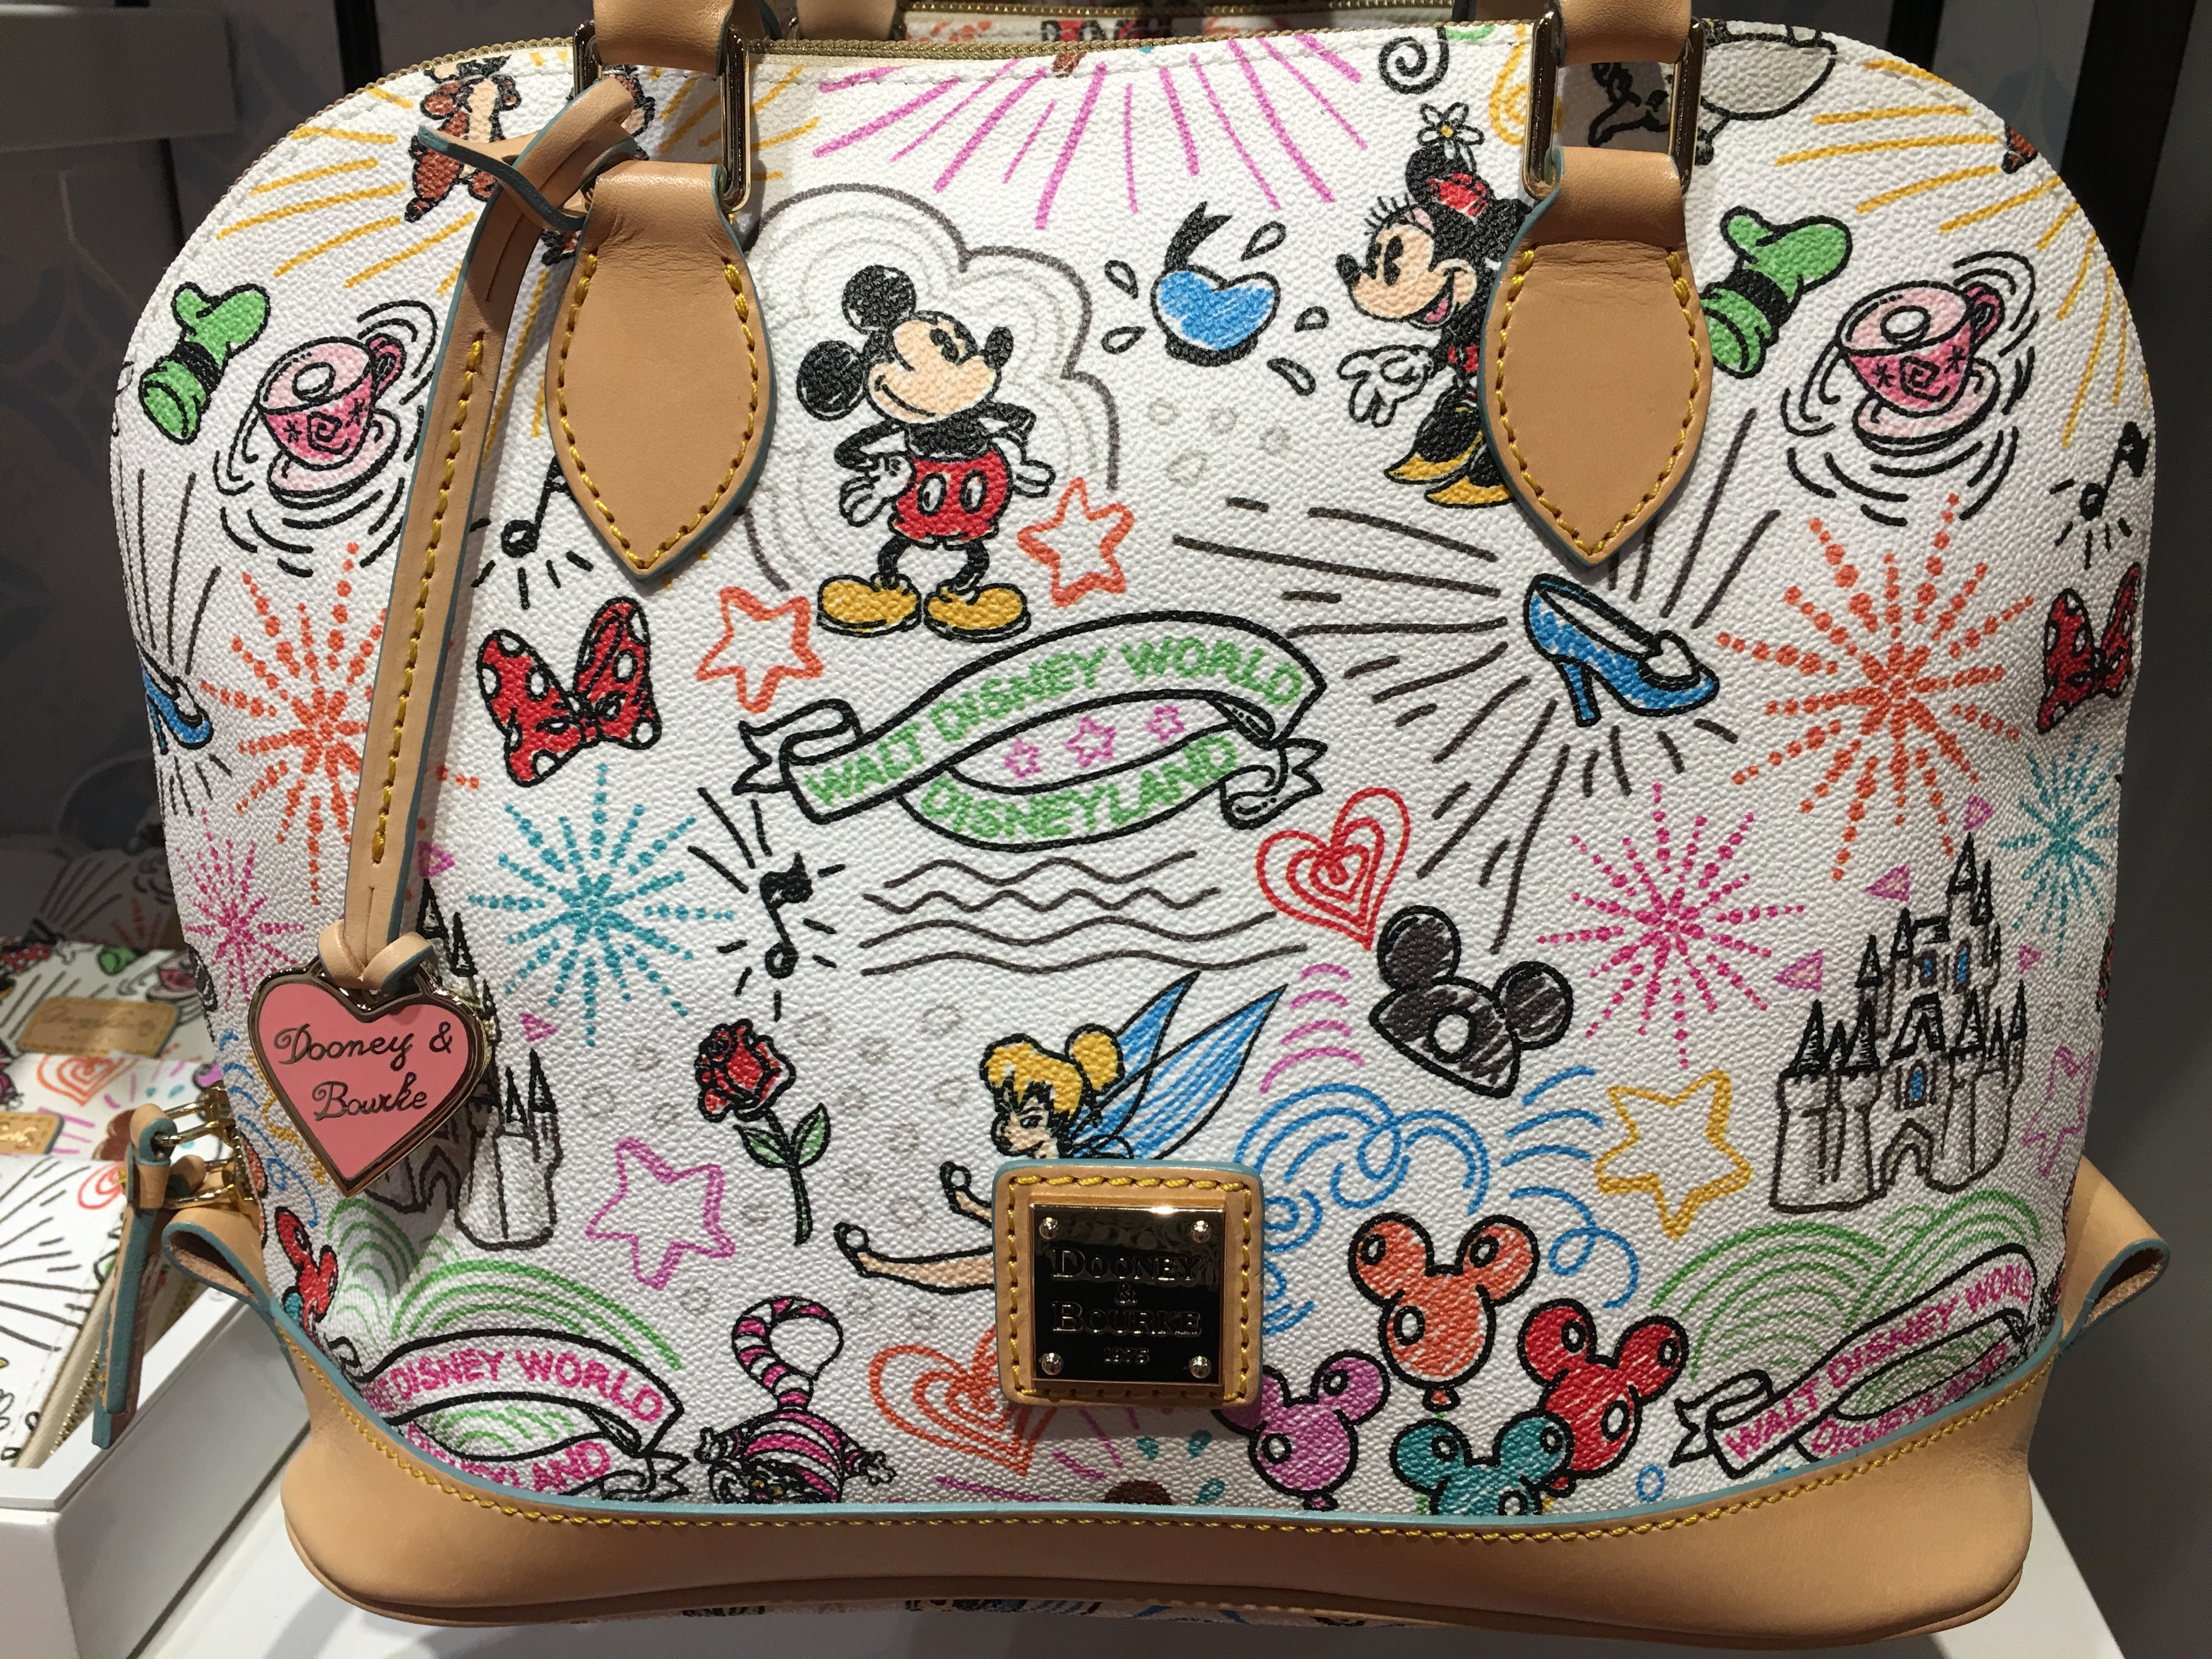 The Best Place To Buy Dooney Bourke Handbags At Disney